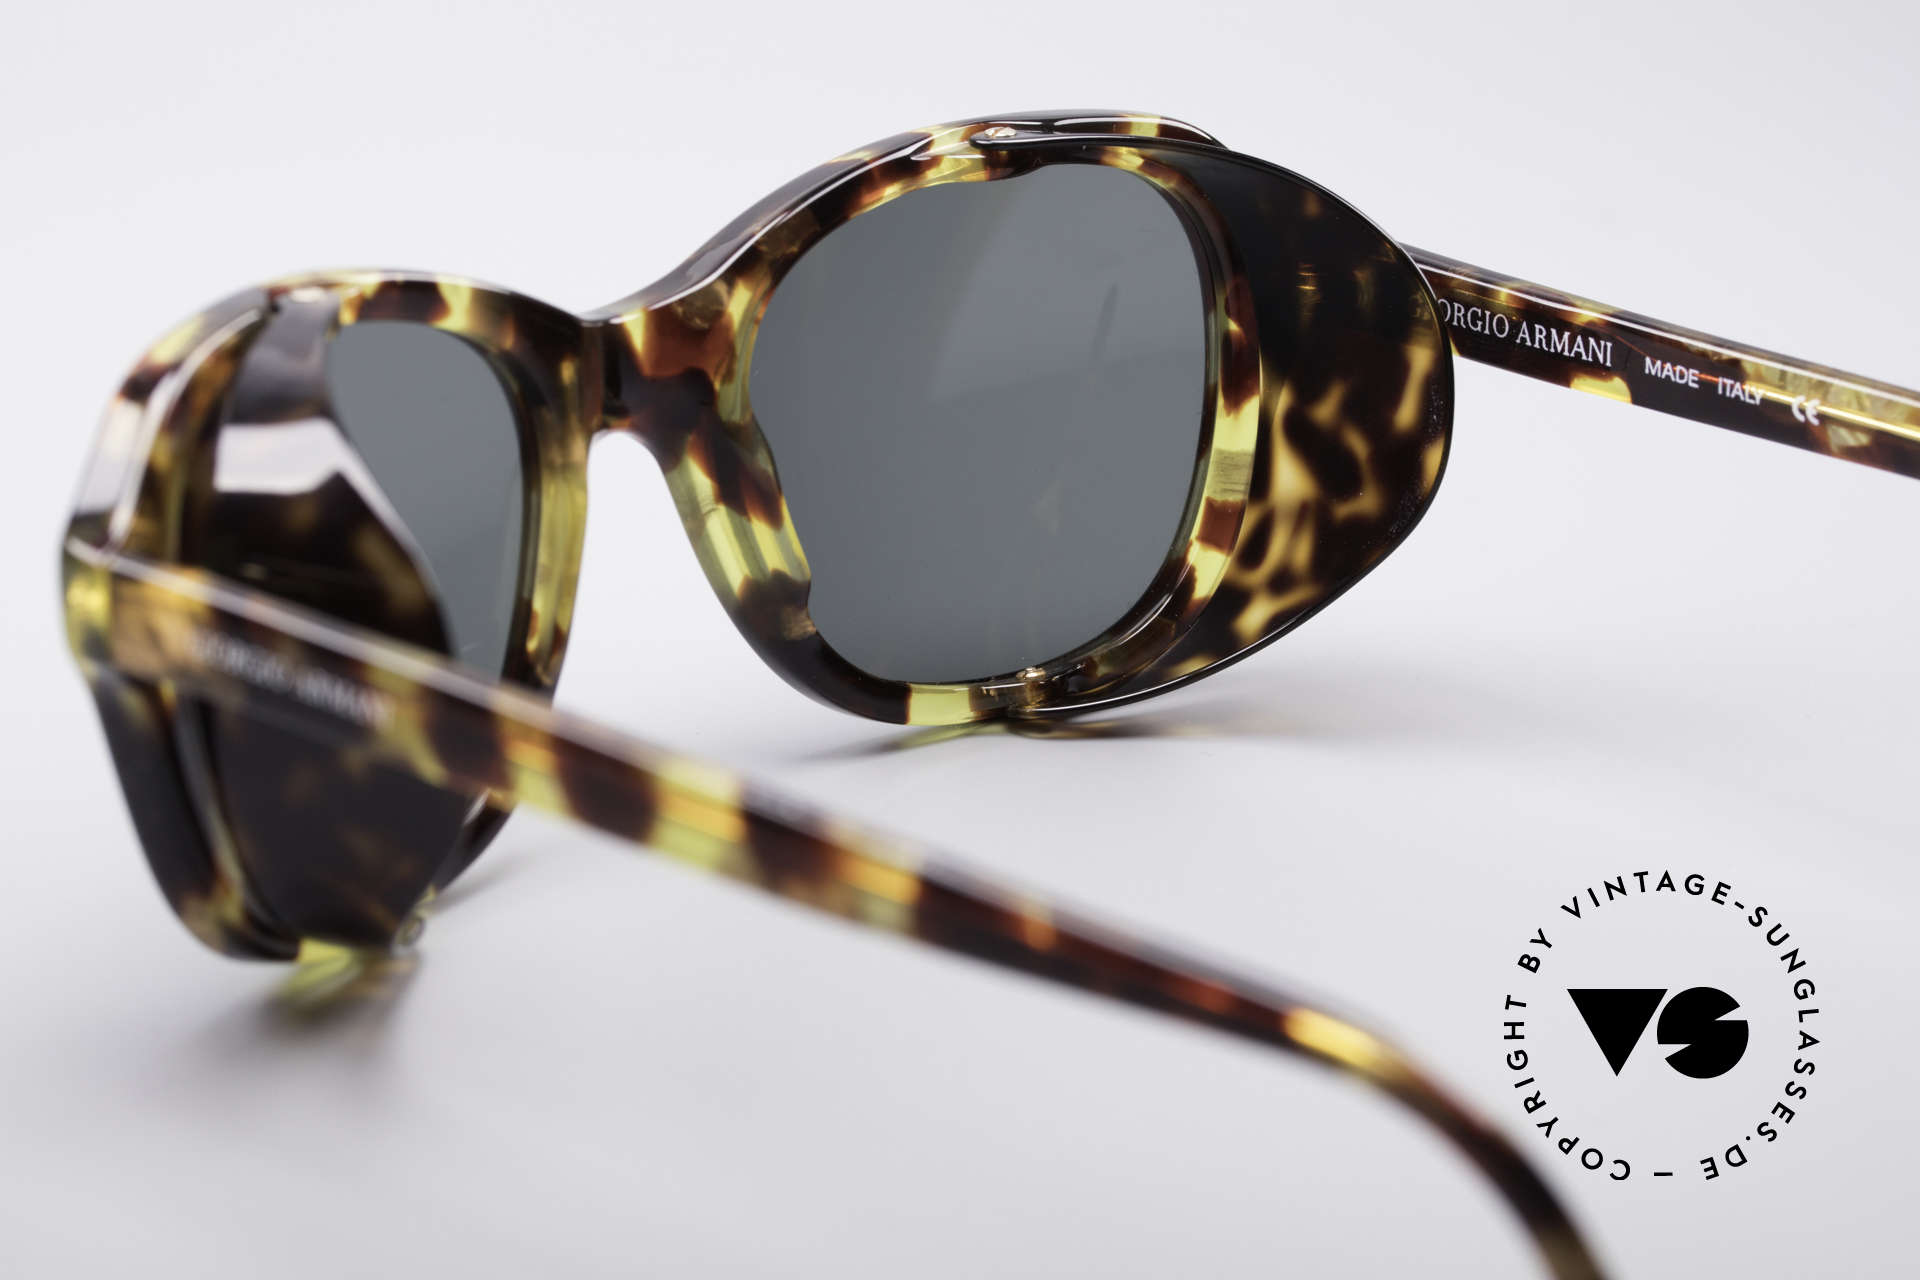 Giorgio Armani 826 No Retro Sunglasses True 90s, NO RETRO sunglasses, but an app. 25 years old original, Made for Women